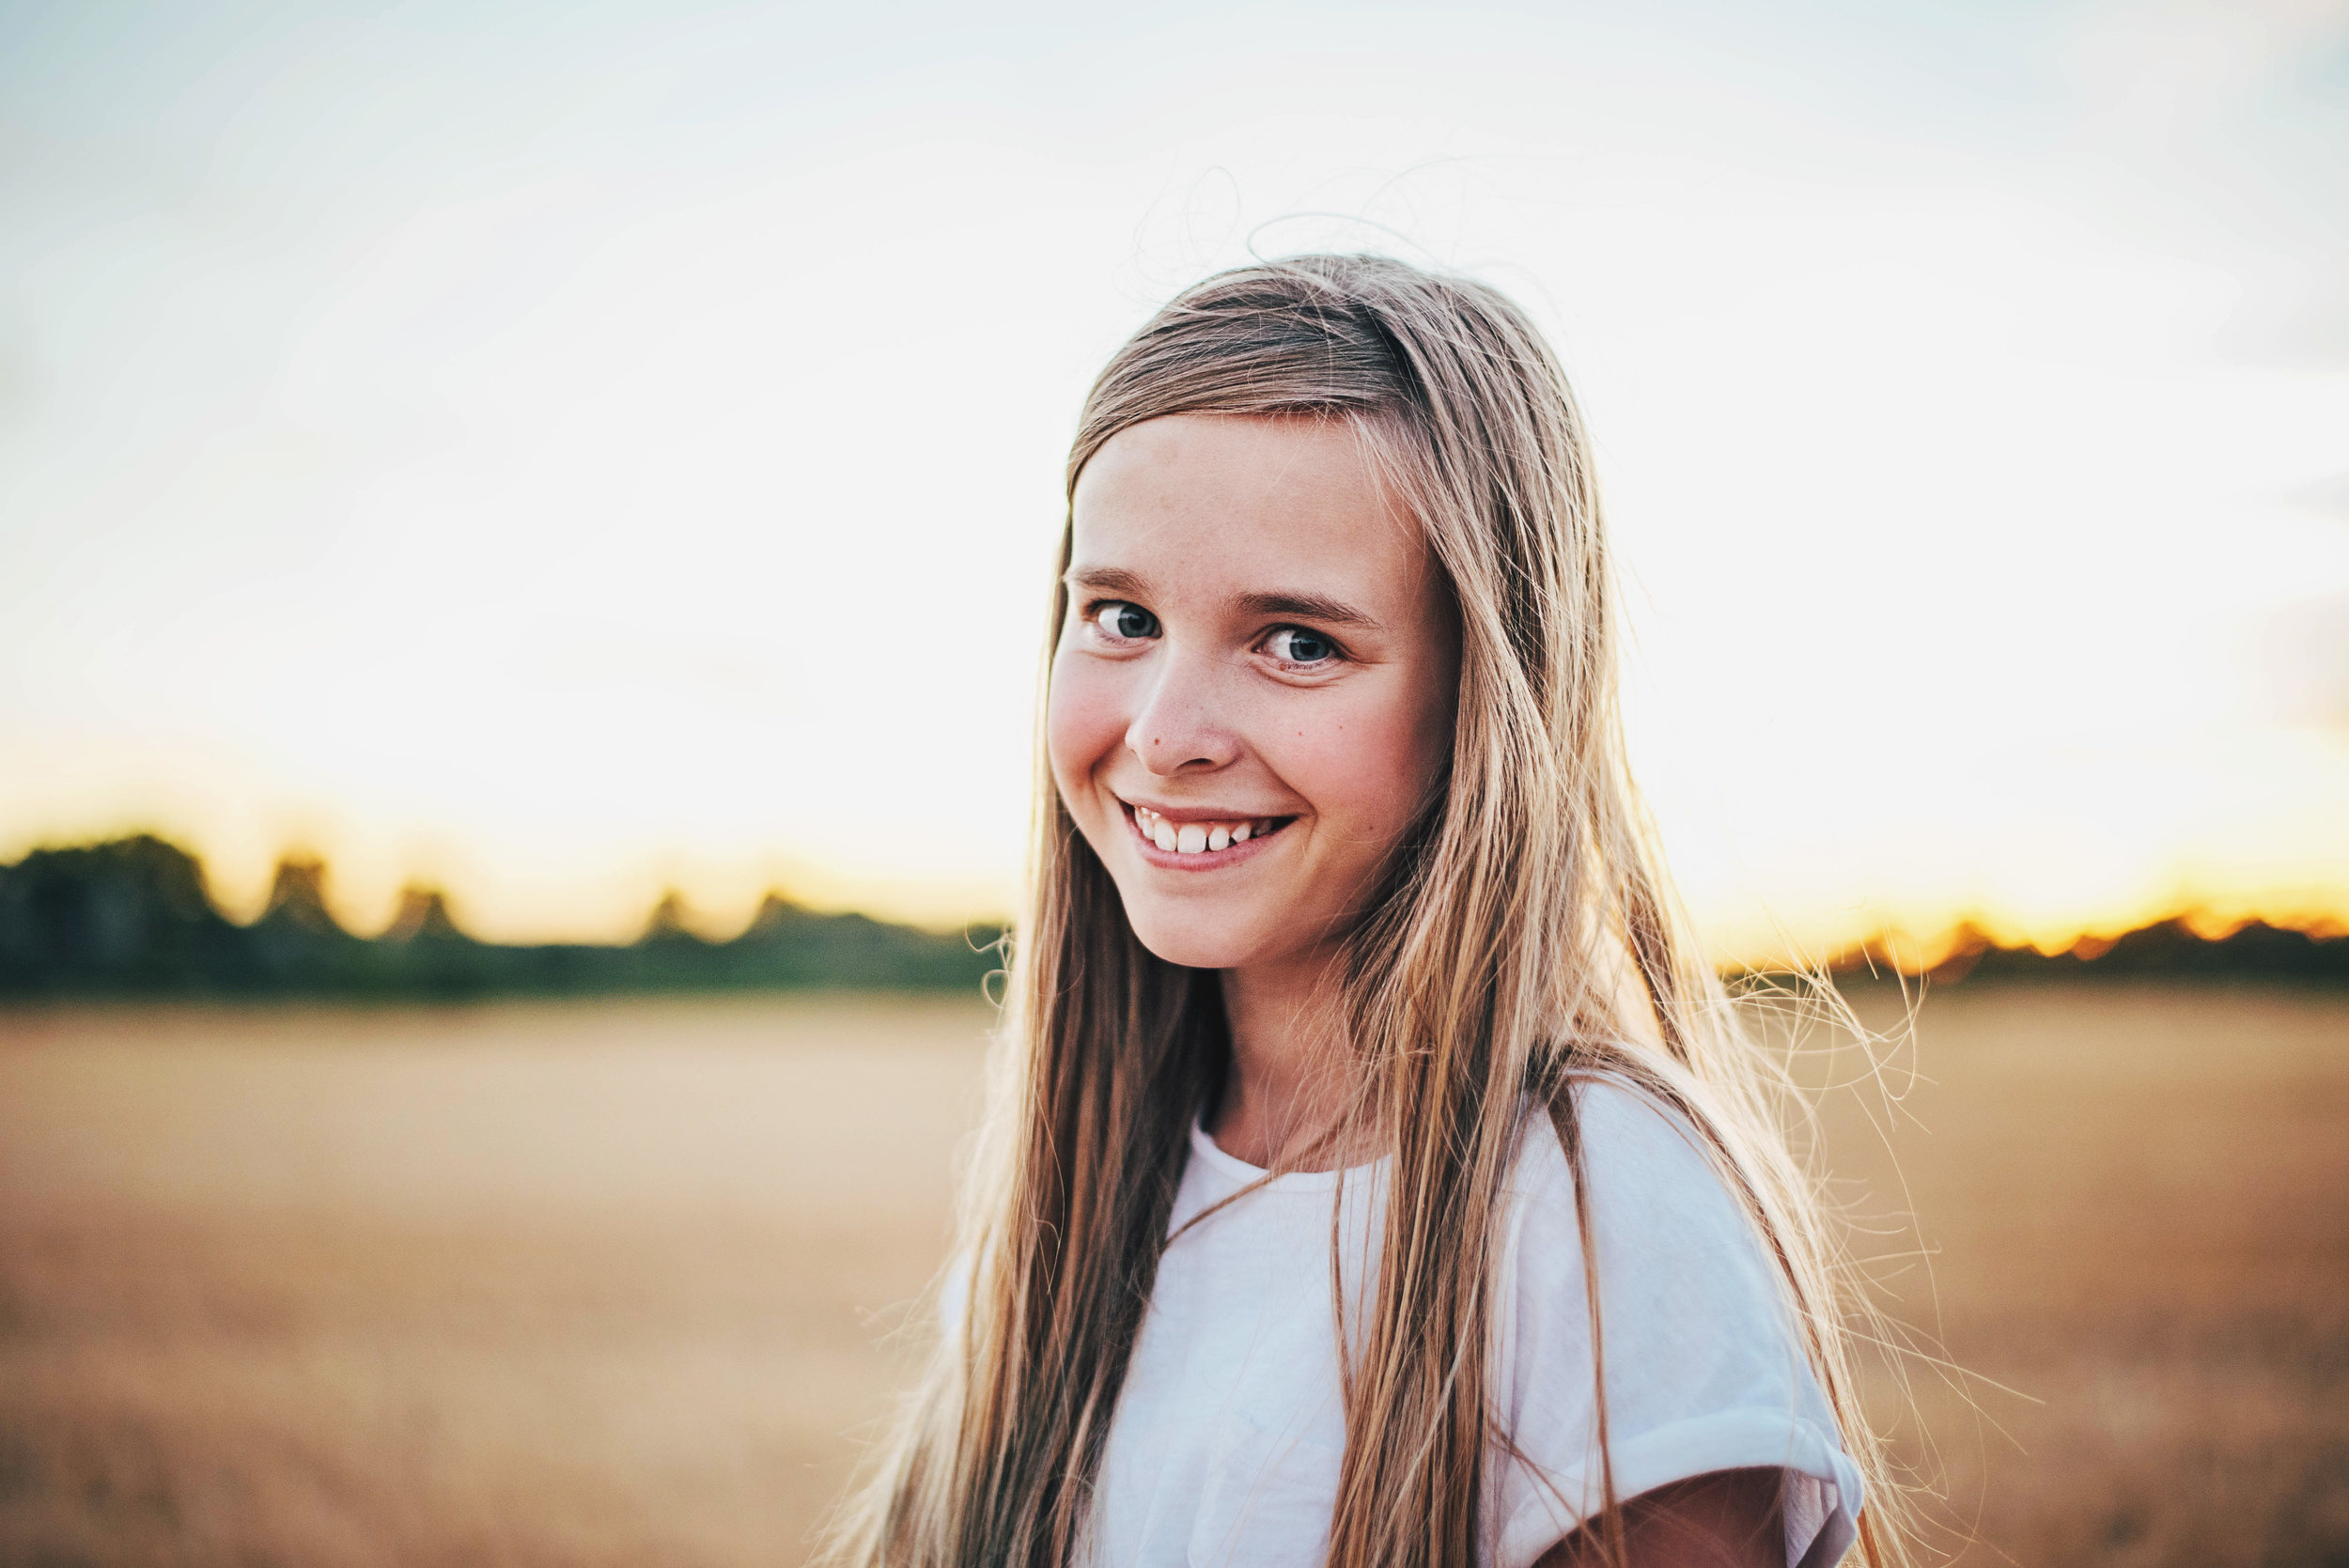 Young girl at sunset Essex UK Documentary Portrait Photographer